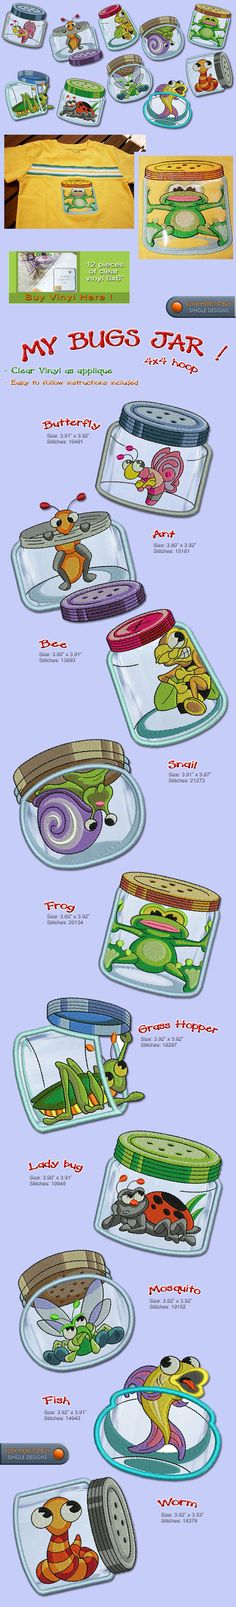 "Some of my favorite designs ever!  ""My Bugs Jar!""  from Smart Needle Embroidery Designs - I've purchased several packs here!"